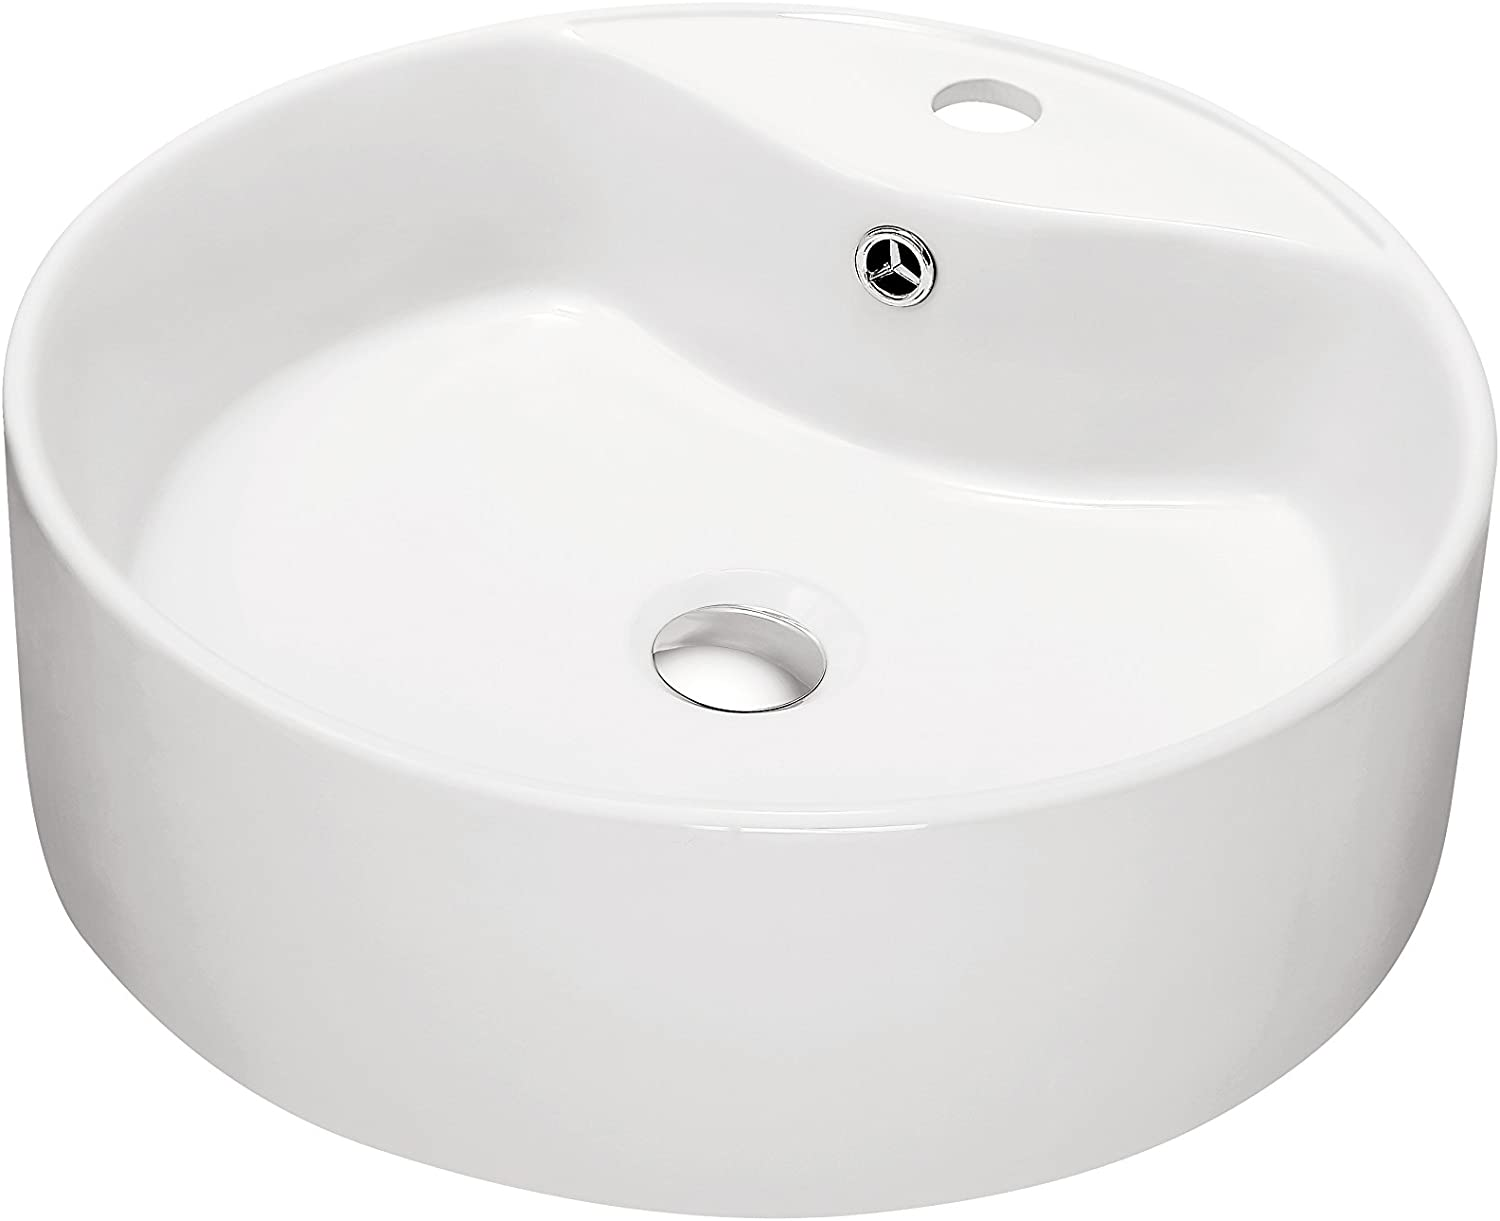 Contemporary Vessel Above-Counter Round Ceramic Art Basin with Single Hole for Faucet and Overflow, White